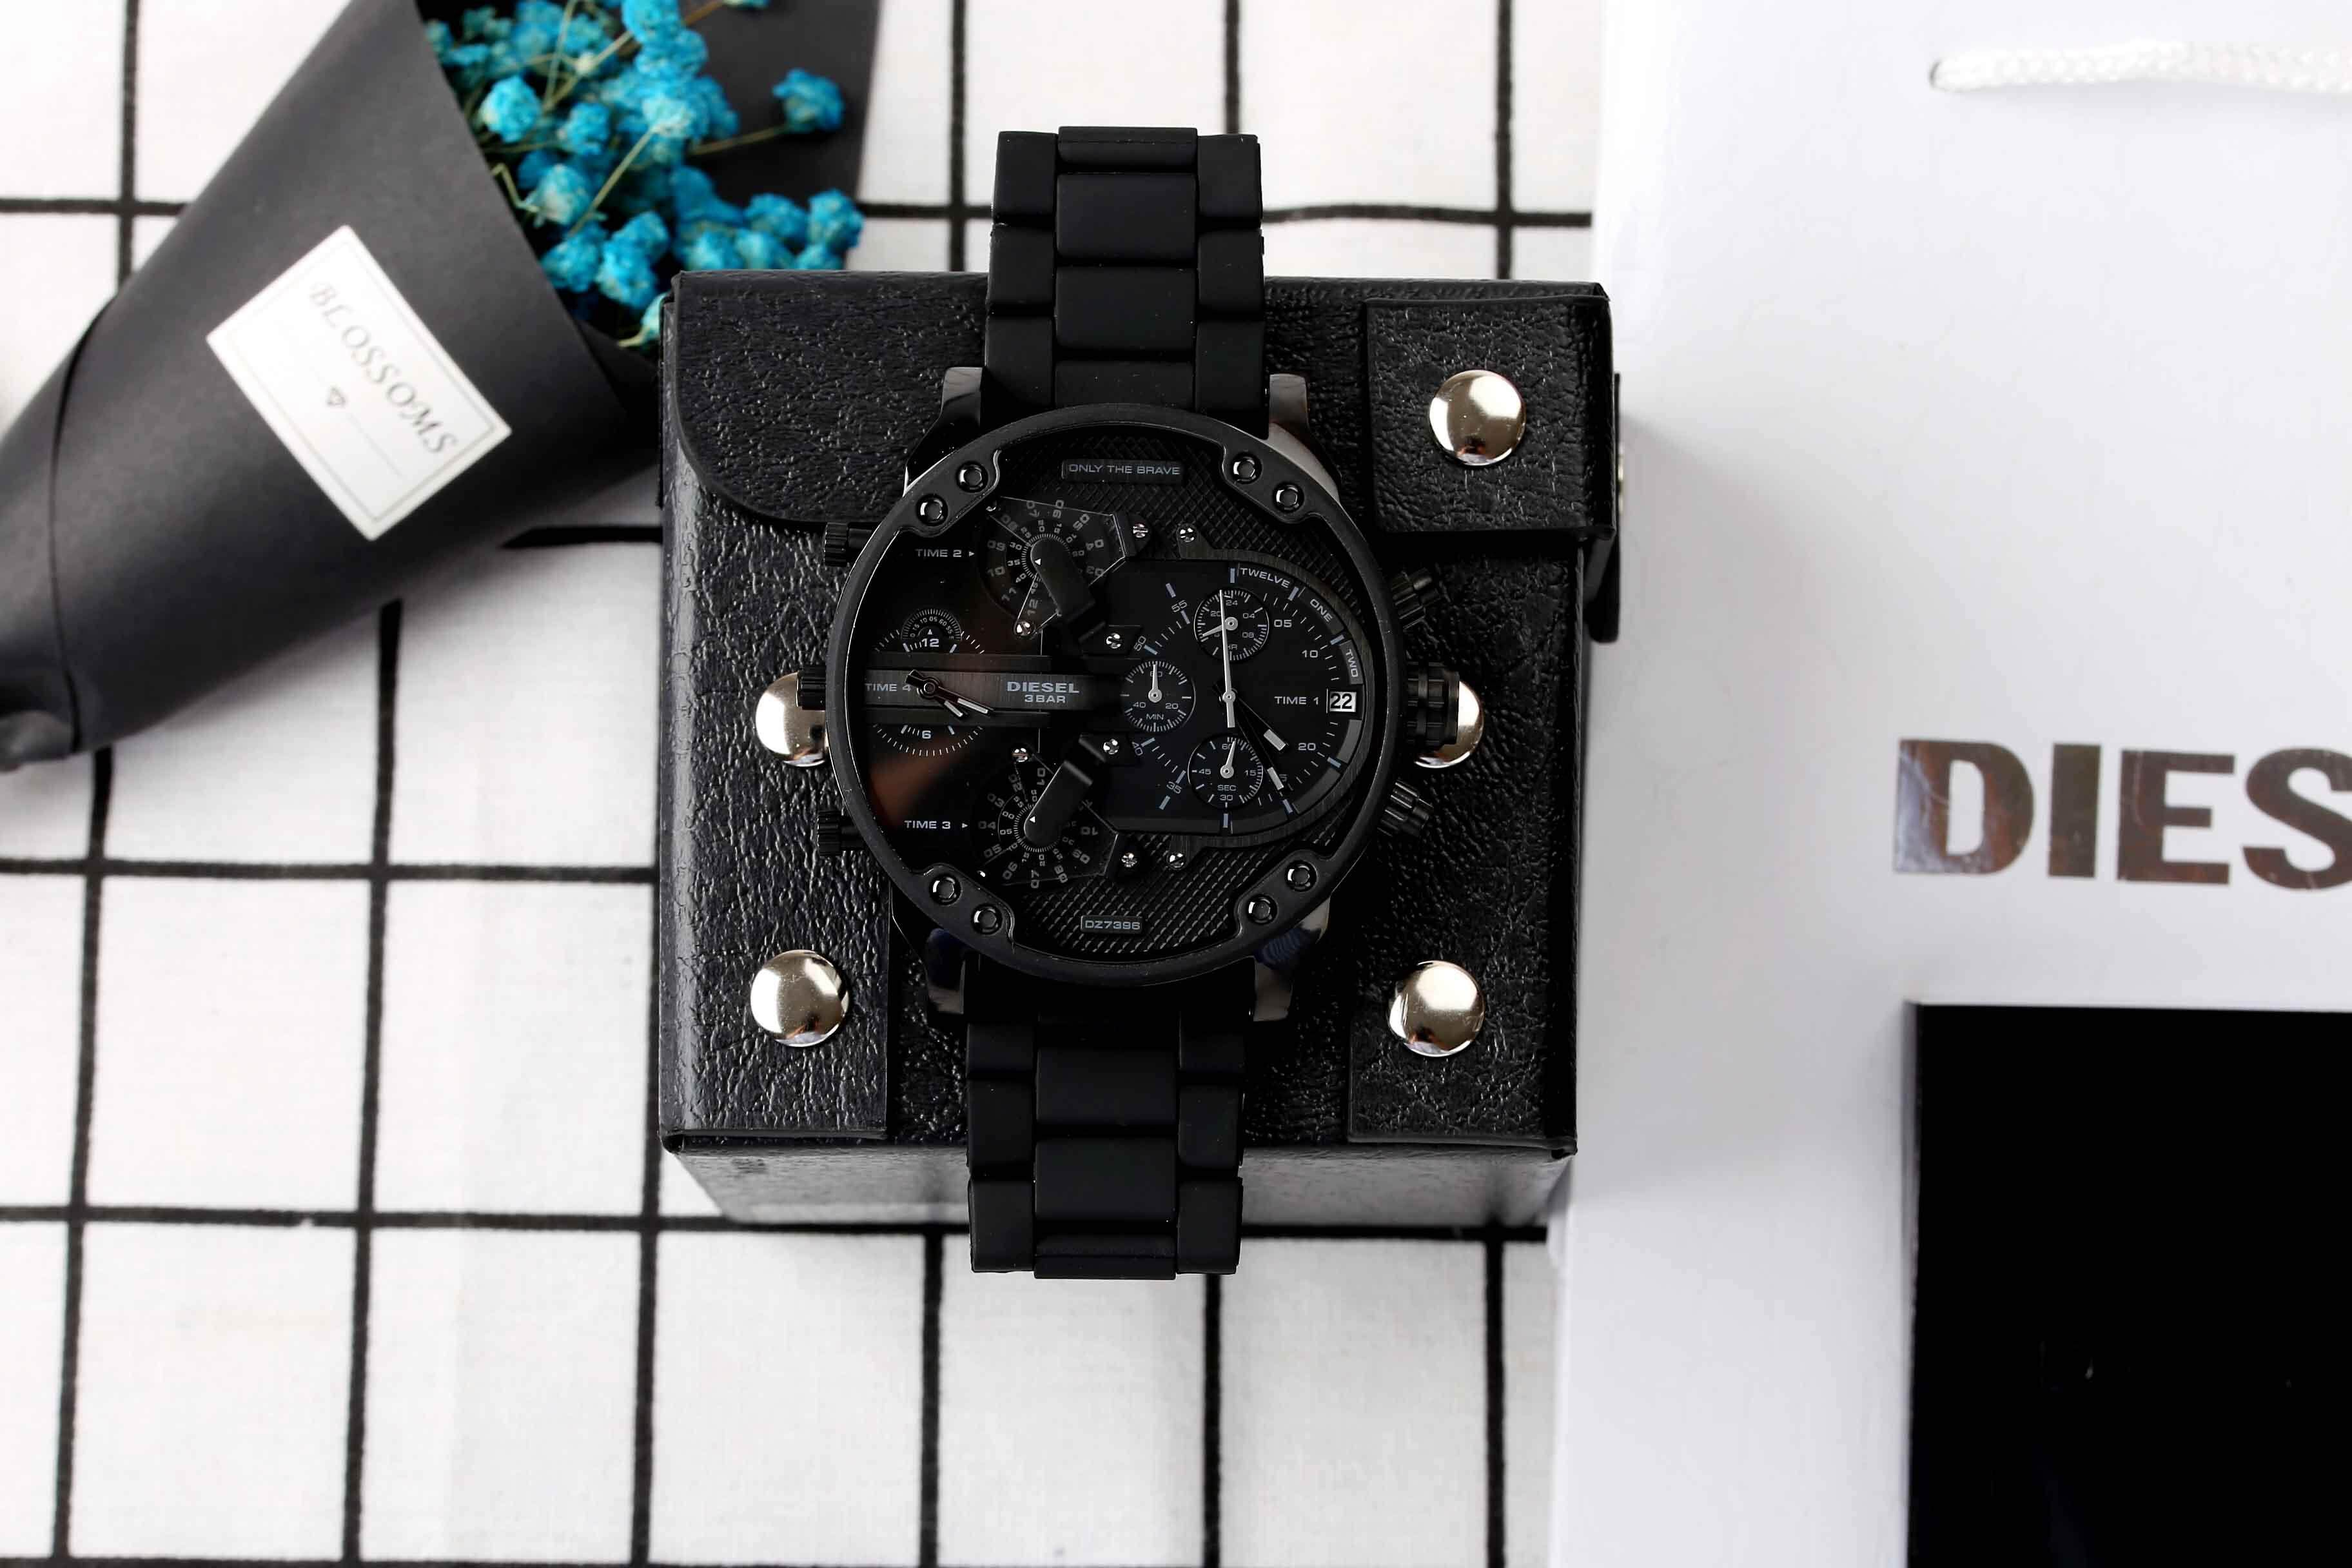 ยี่ห้อนี้ดีไหม  นครสวรรค์ Genuine Products Waterproof Diesel_Military Series. Three-Eye Timing Fashion casual watchMineral Toughened Glass Mirror .Japanese Quartz Core. Resin Strap .